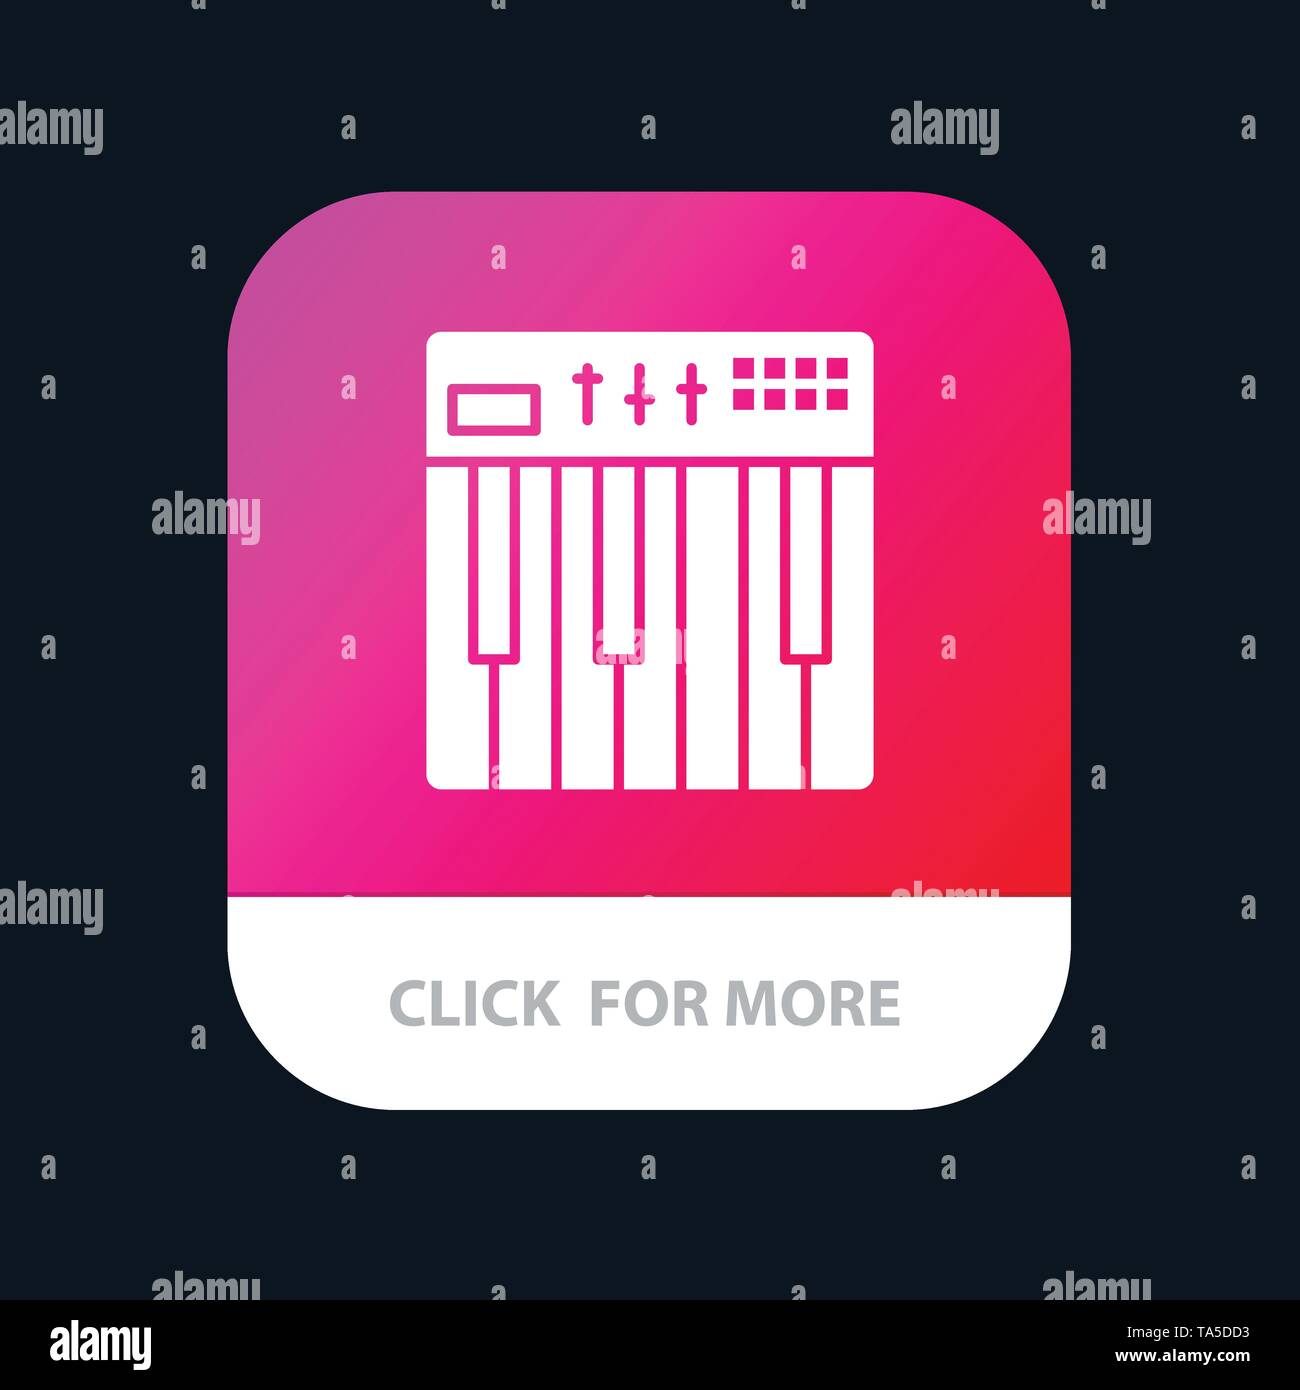 Controller, Hardware, Keyboard, Midi, Music Mobile App Button. Android and IOS Glyph Version - Stock Image